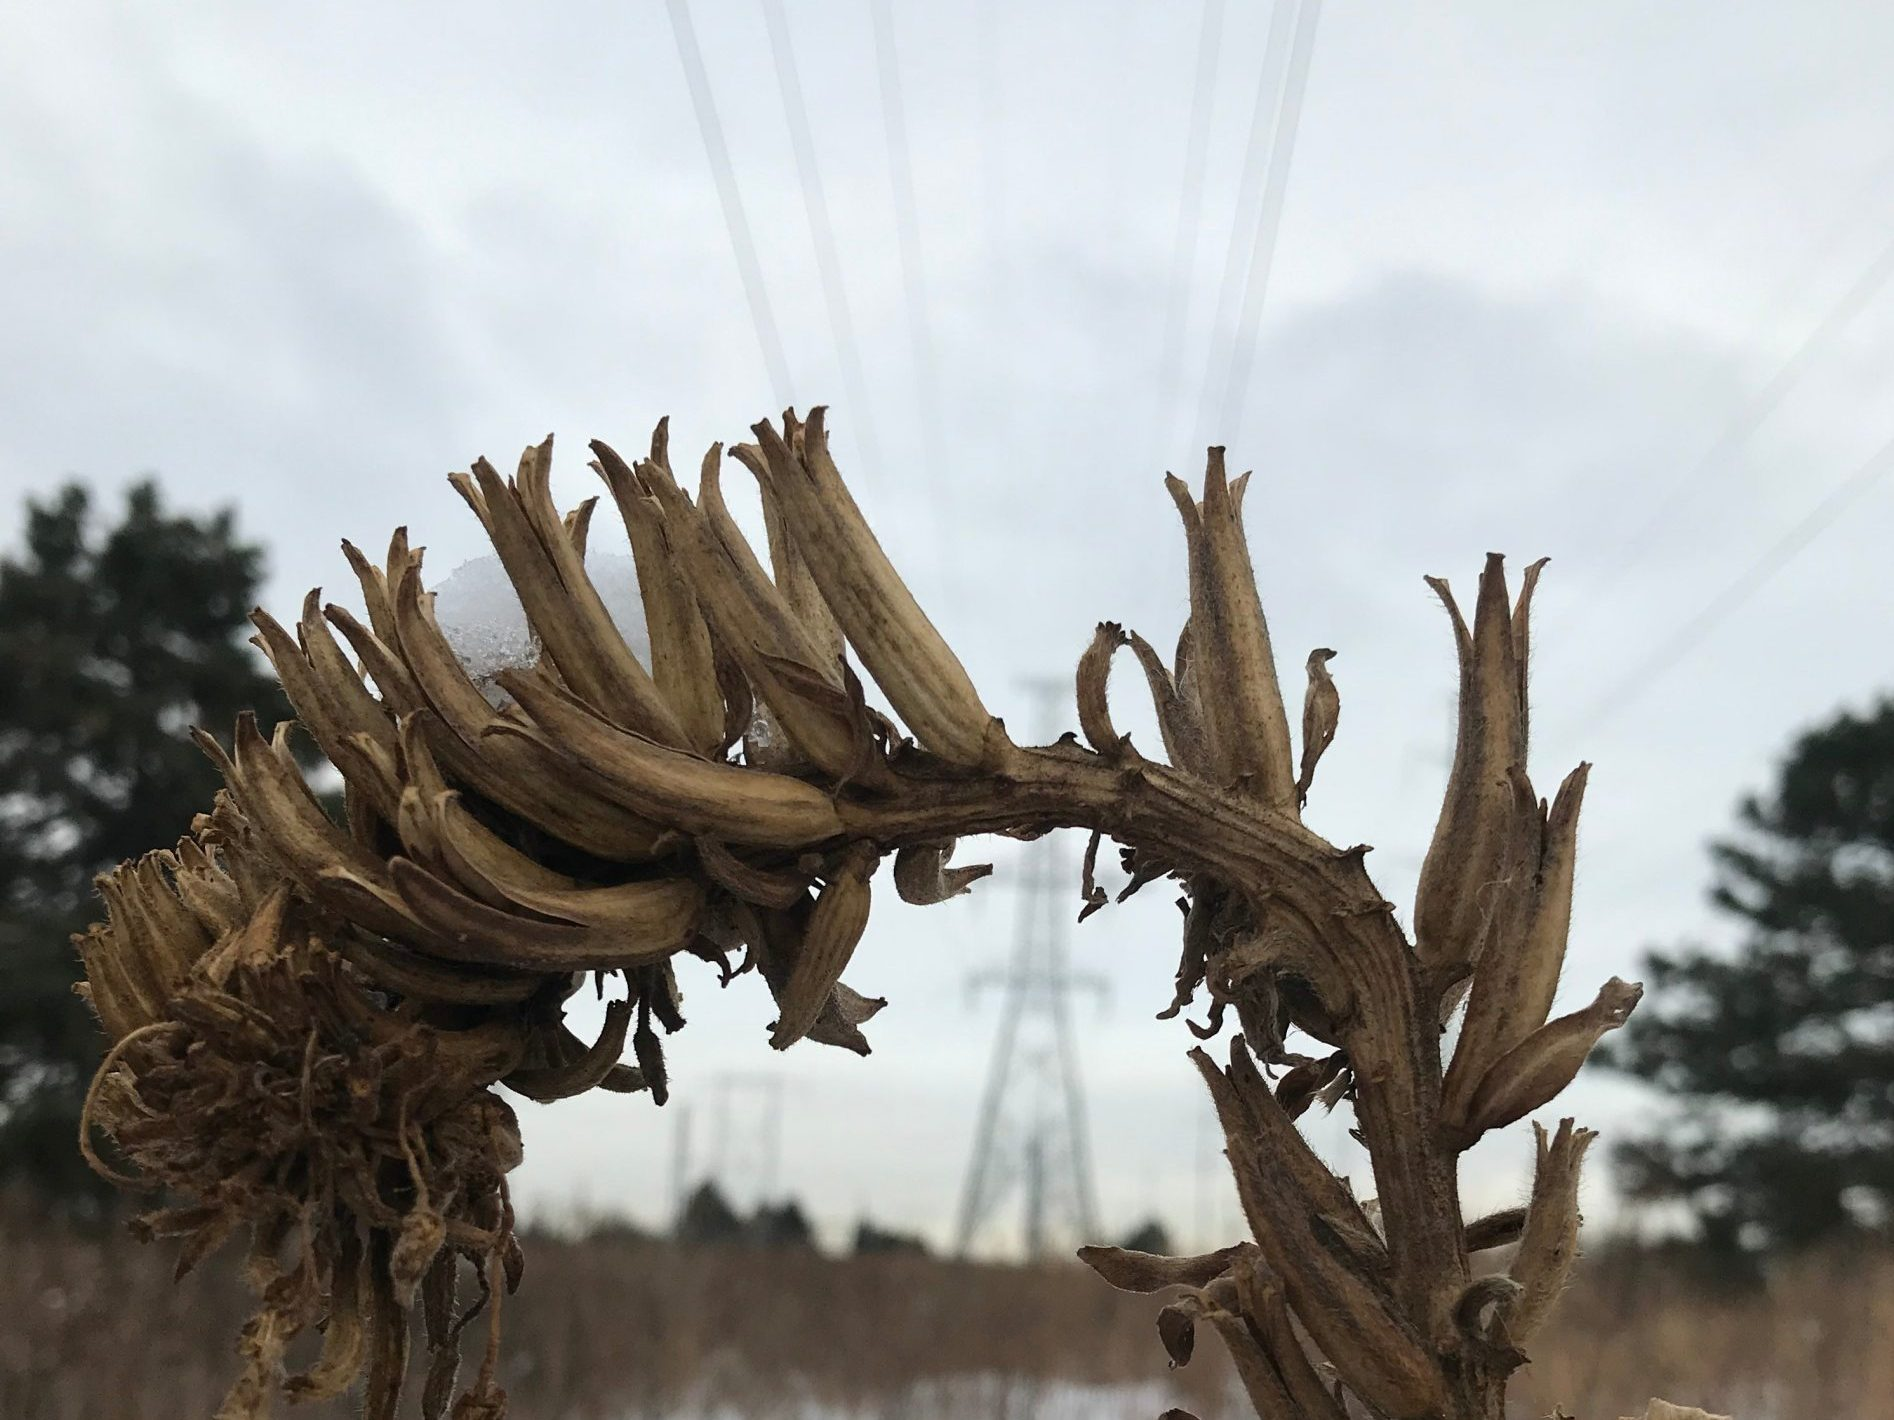 Dried flower in winter at The Meadoway with hydro lines in background